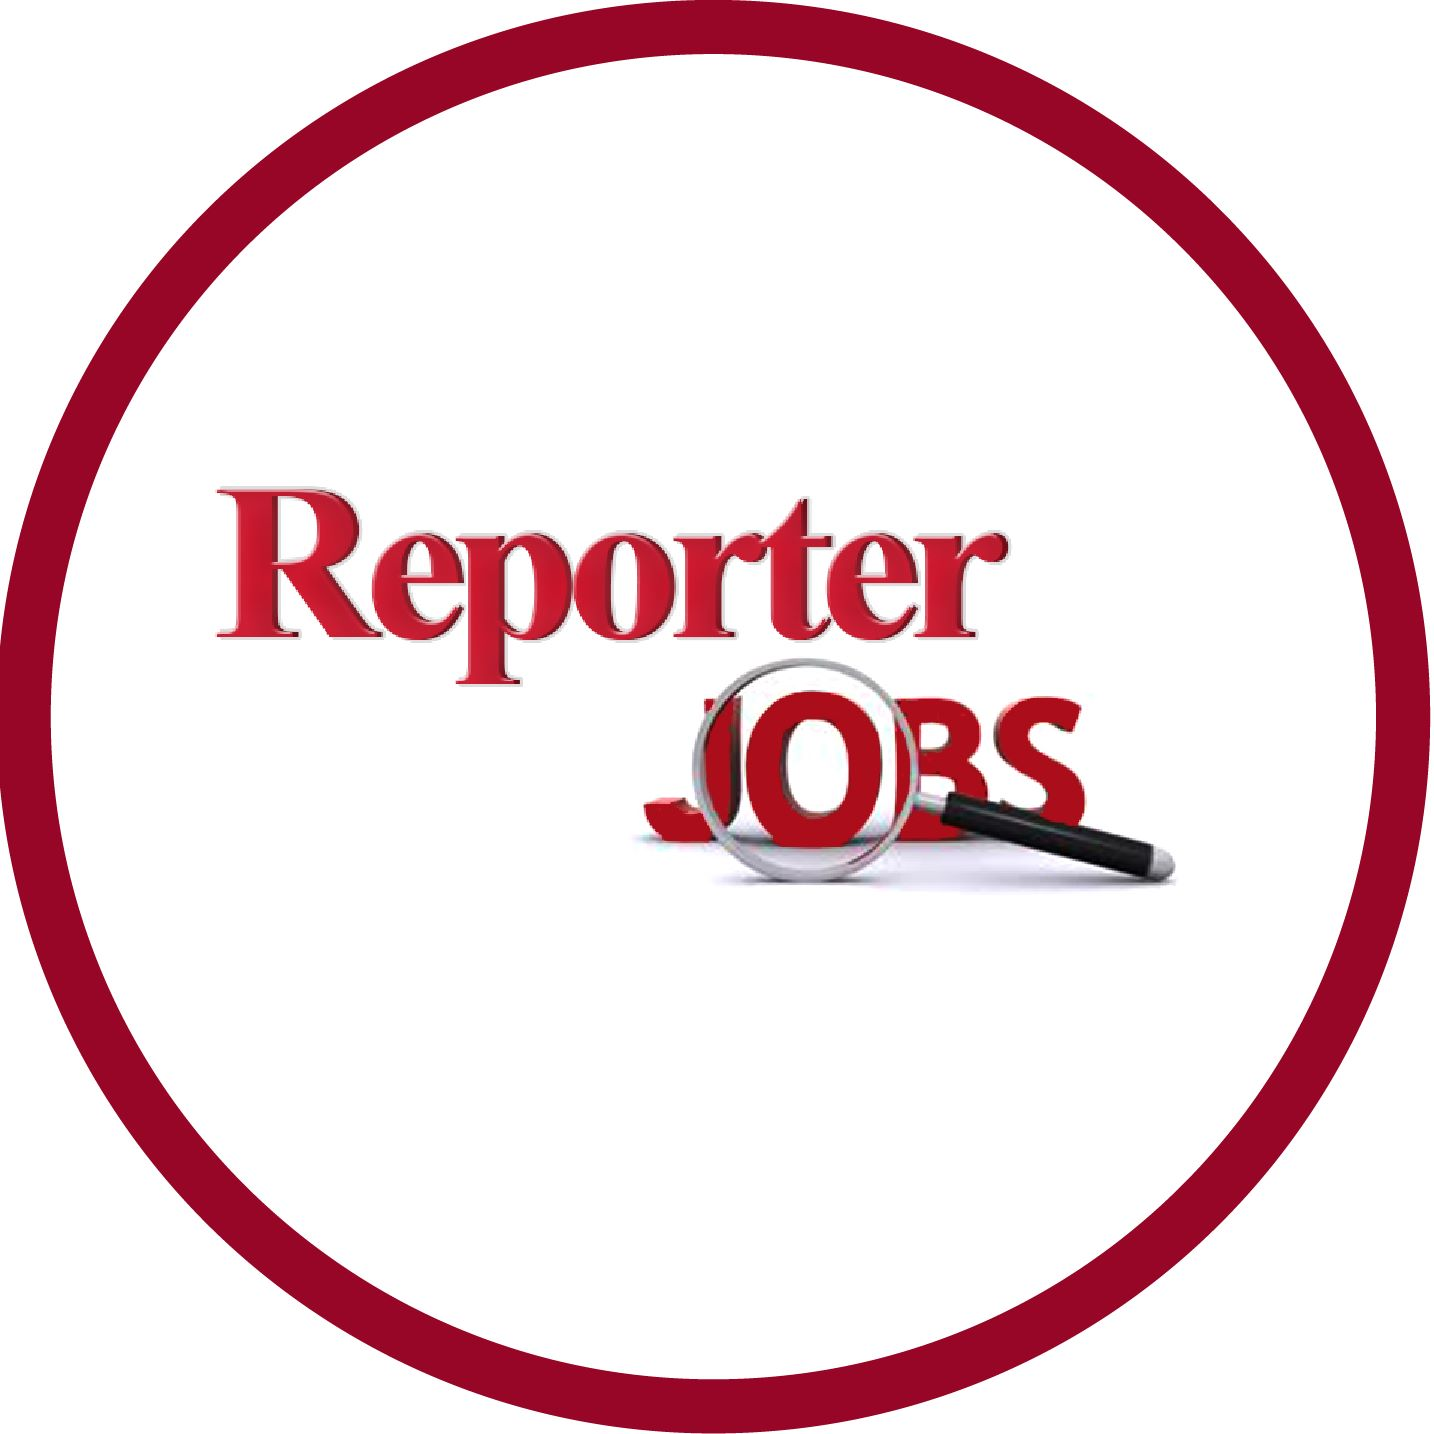 Ethiojobs | Ethiopian Reporter Jobs - # 1 Popular Job Site !